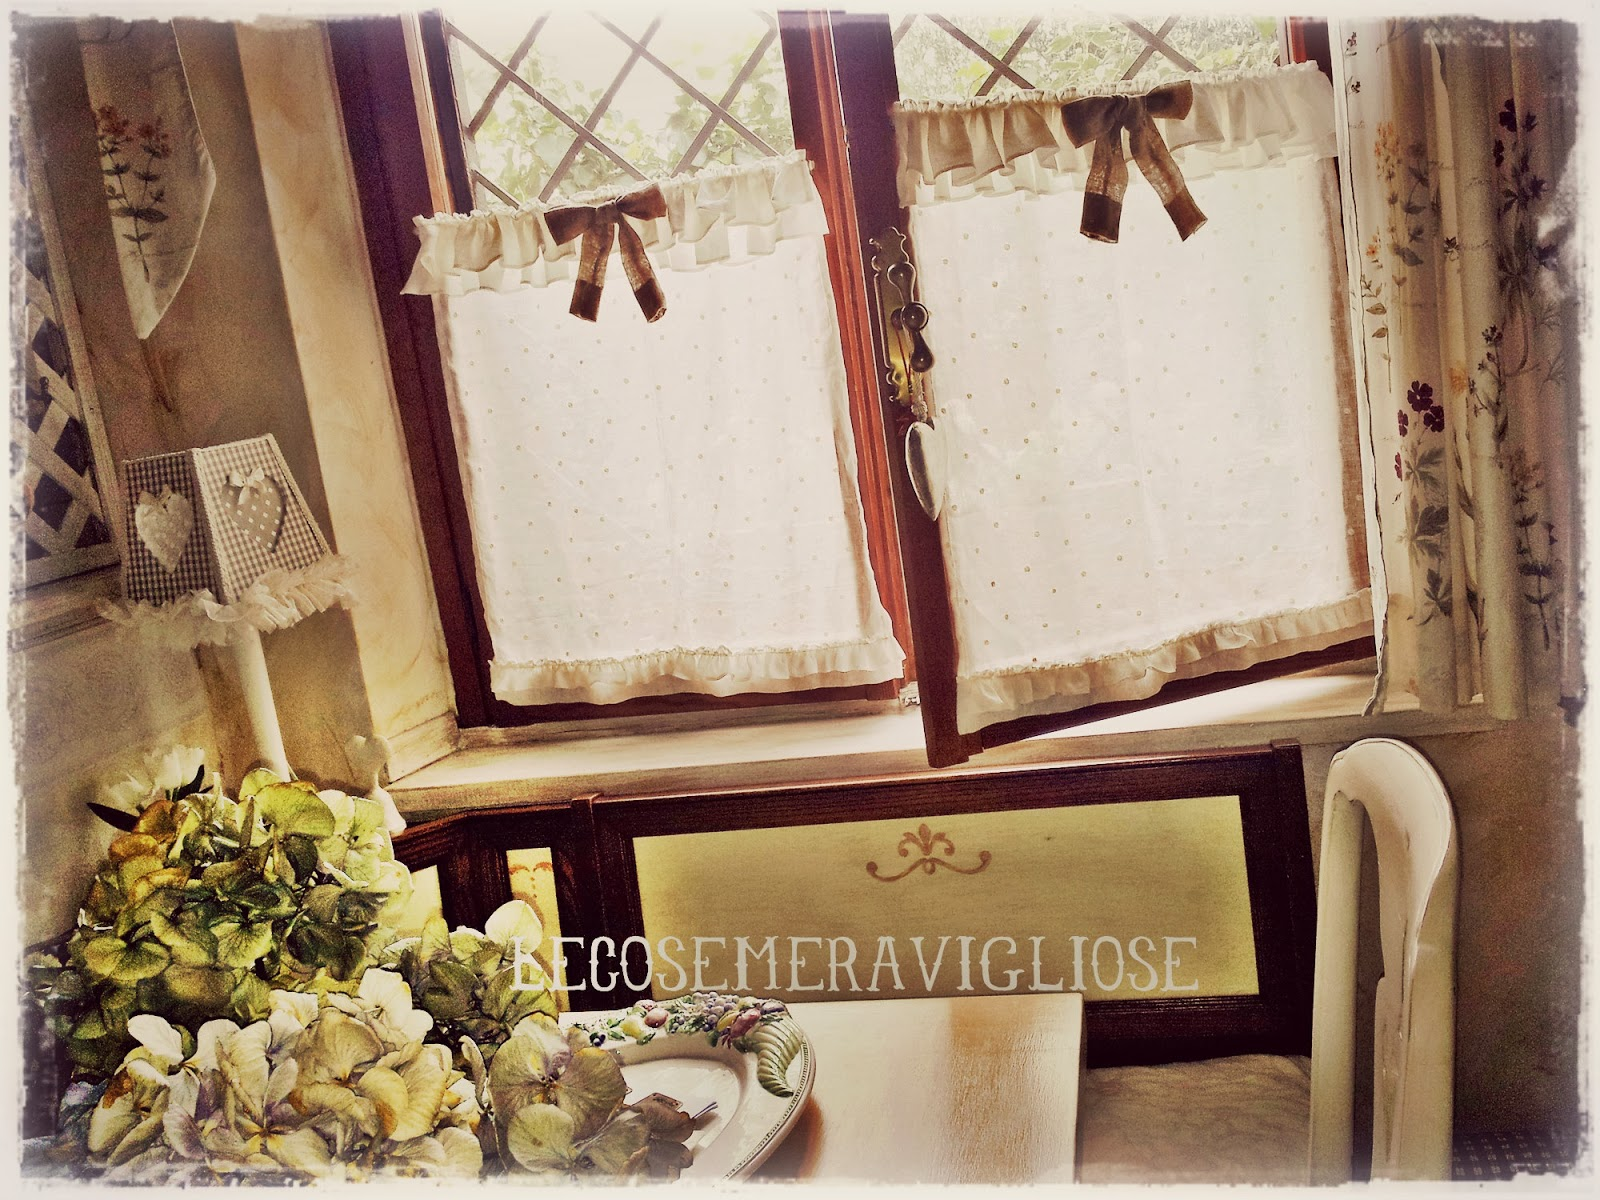 Lecosemeravigliose shabby e country chic passions tende for Mantovane per tende stile country